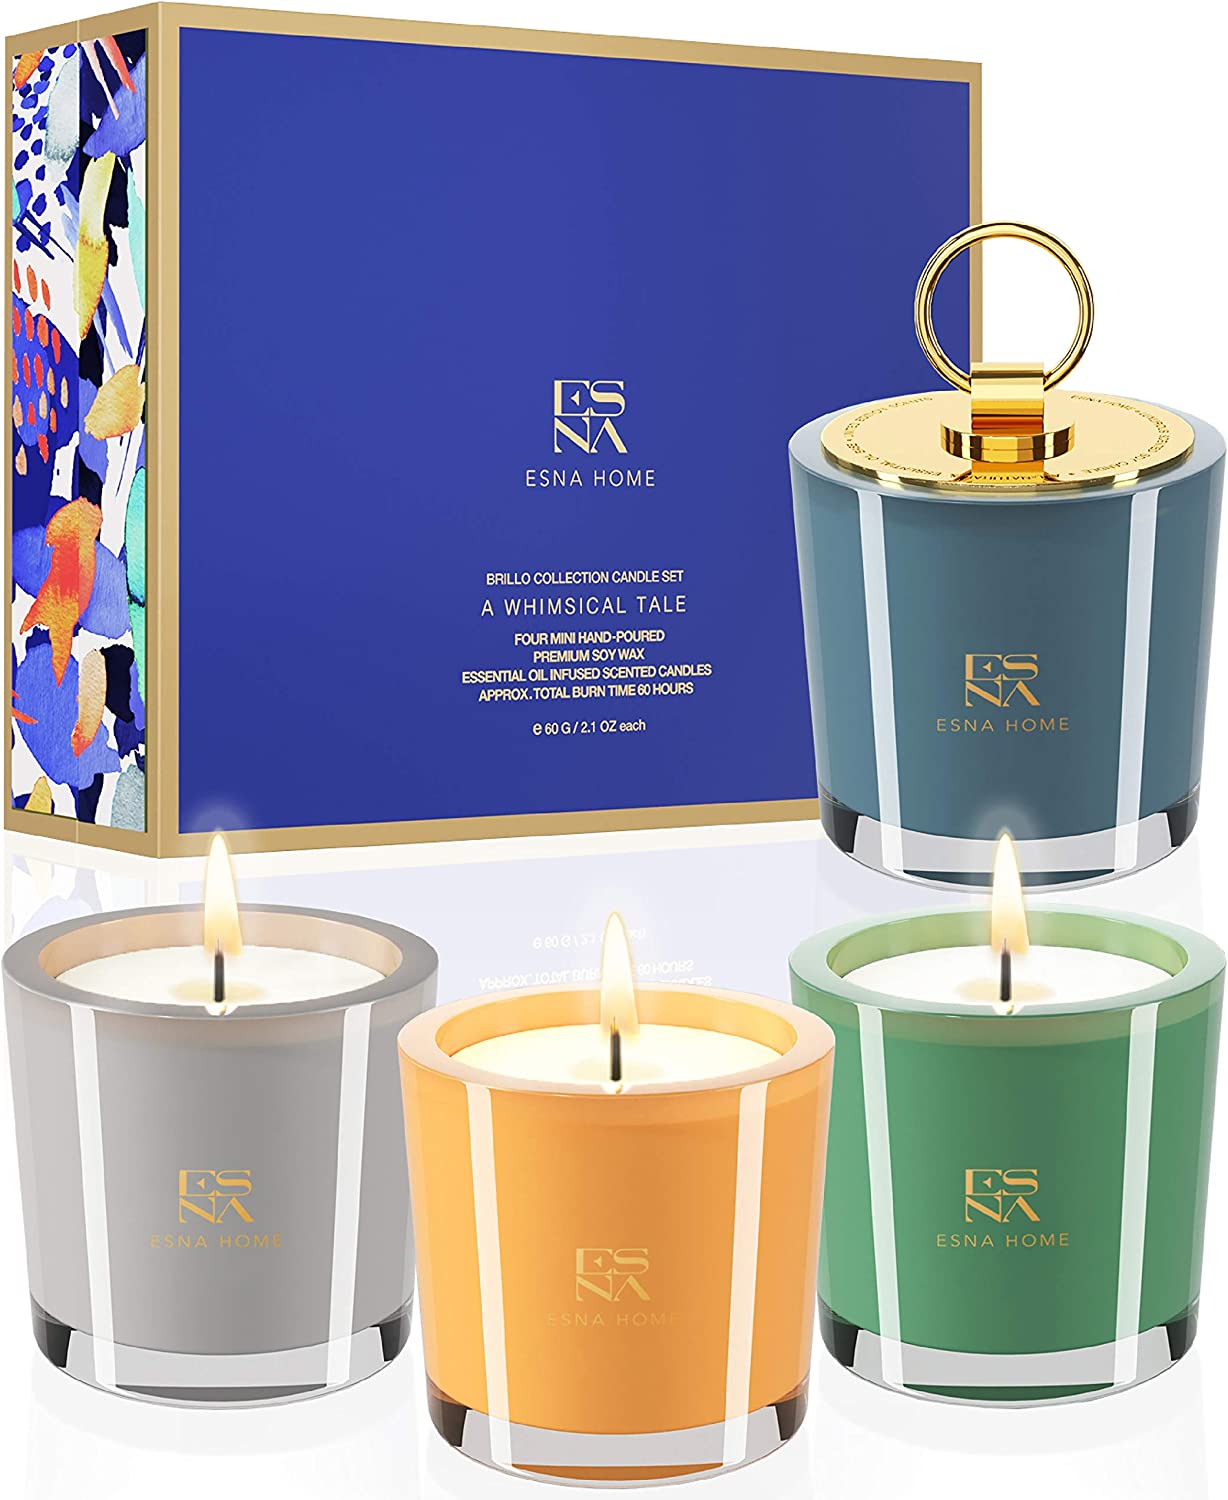 ESNA HOME Luxury Scented Candle Set | Aromatherapy Gifts for Her | 4 All Natural Soy Candles | Luxury Gift Box | Candles for Home Scented | Self Care Gifts for Women | Self Care Candle set